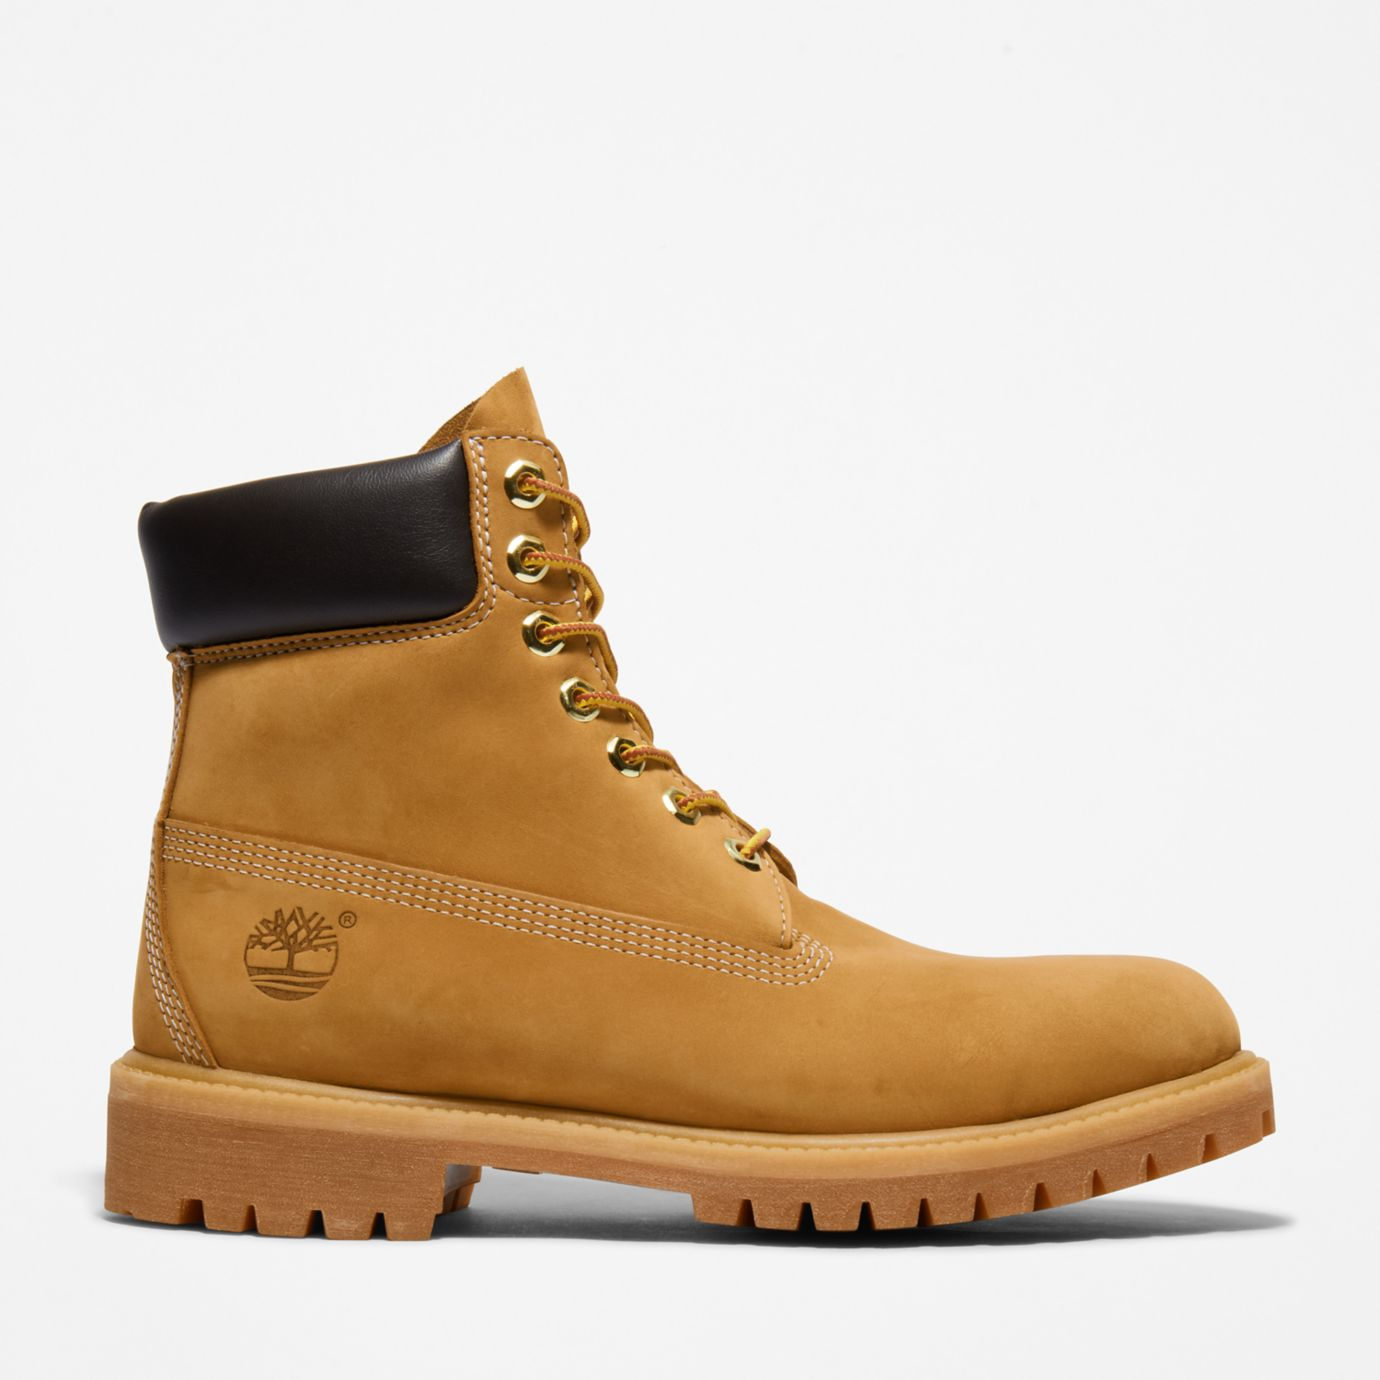 be341680e55 The Original Yellow Boot: Timberland's history of the yellow boot